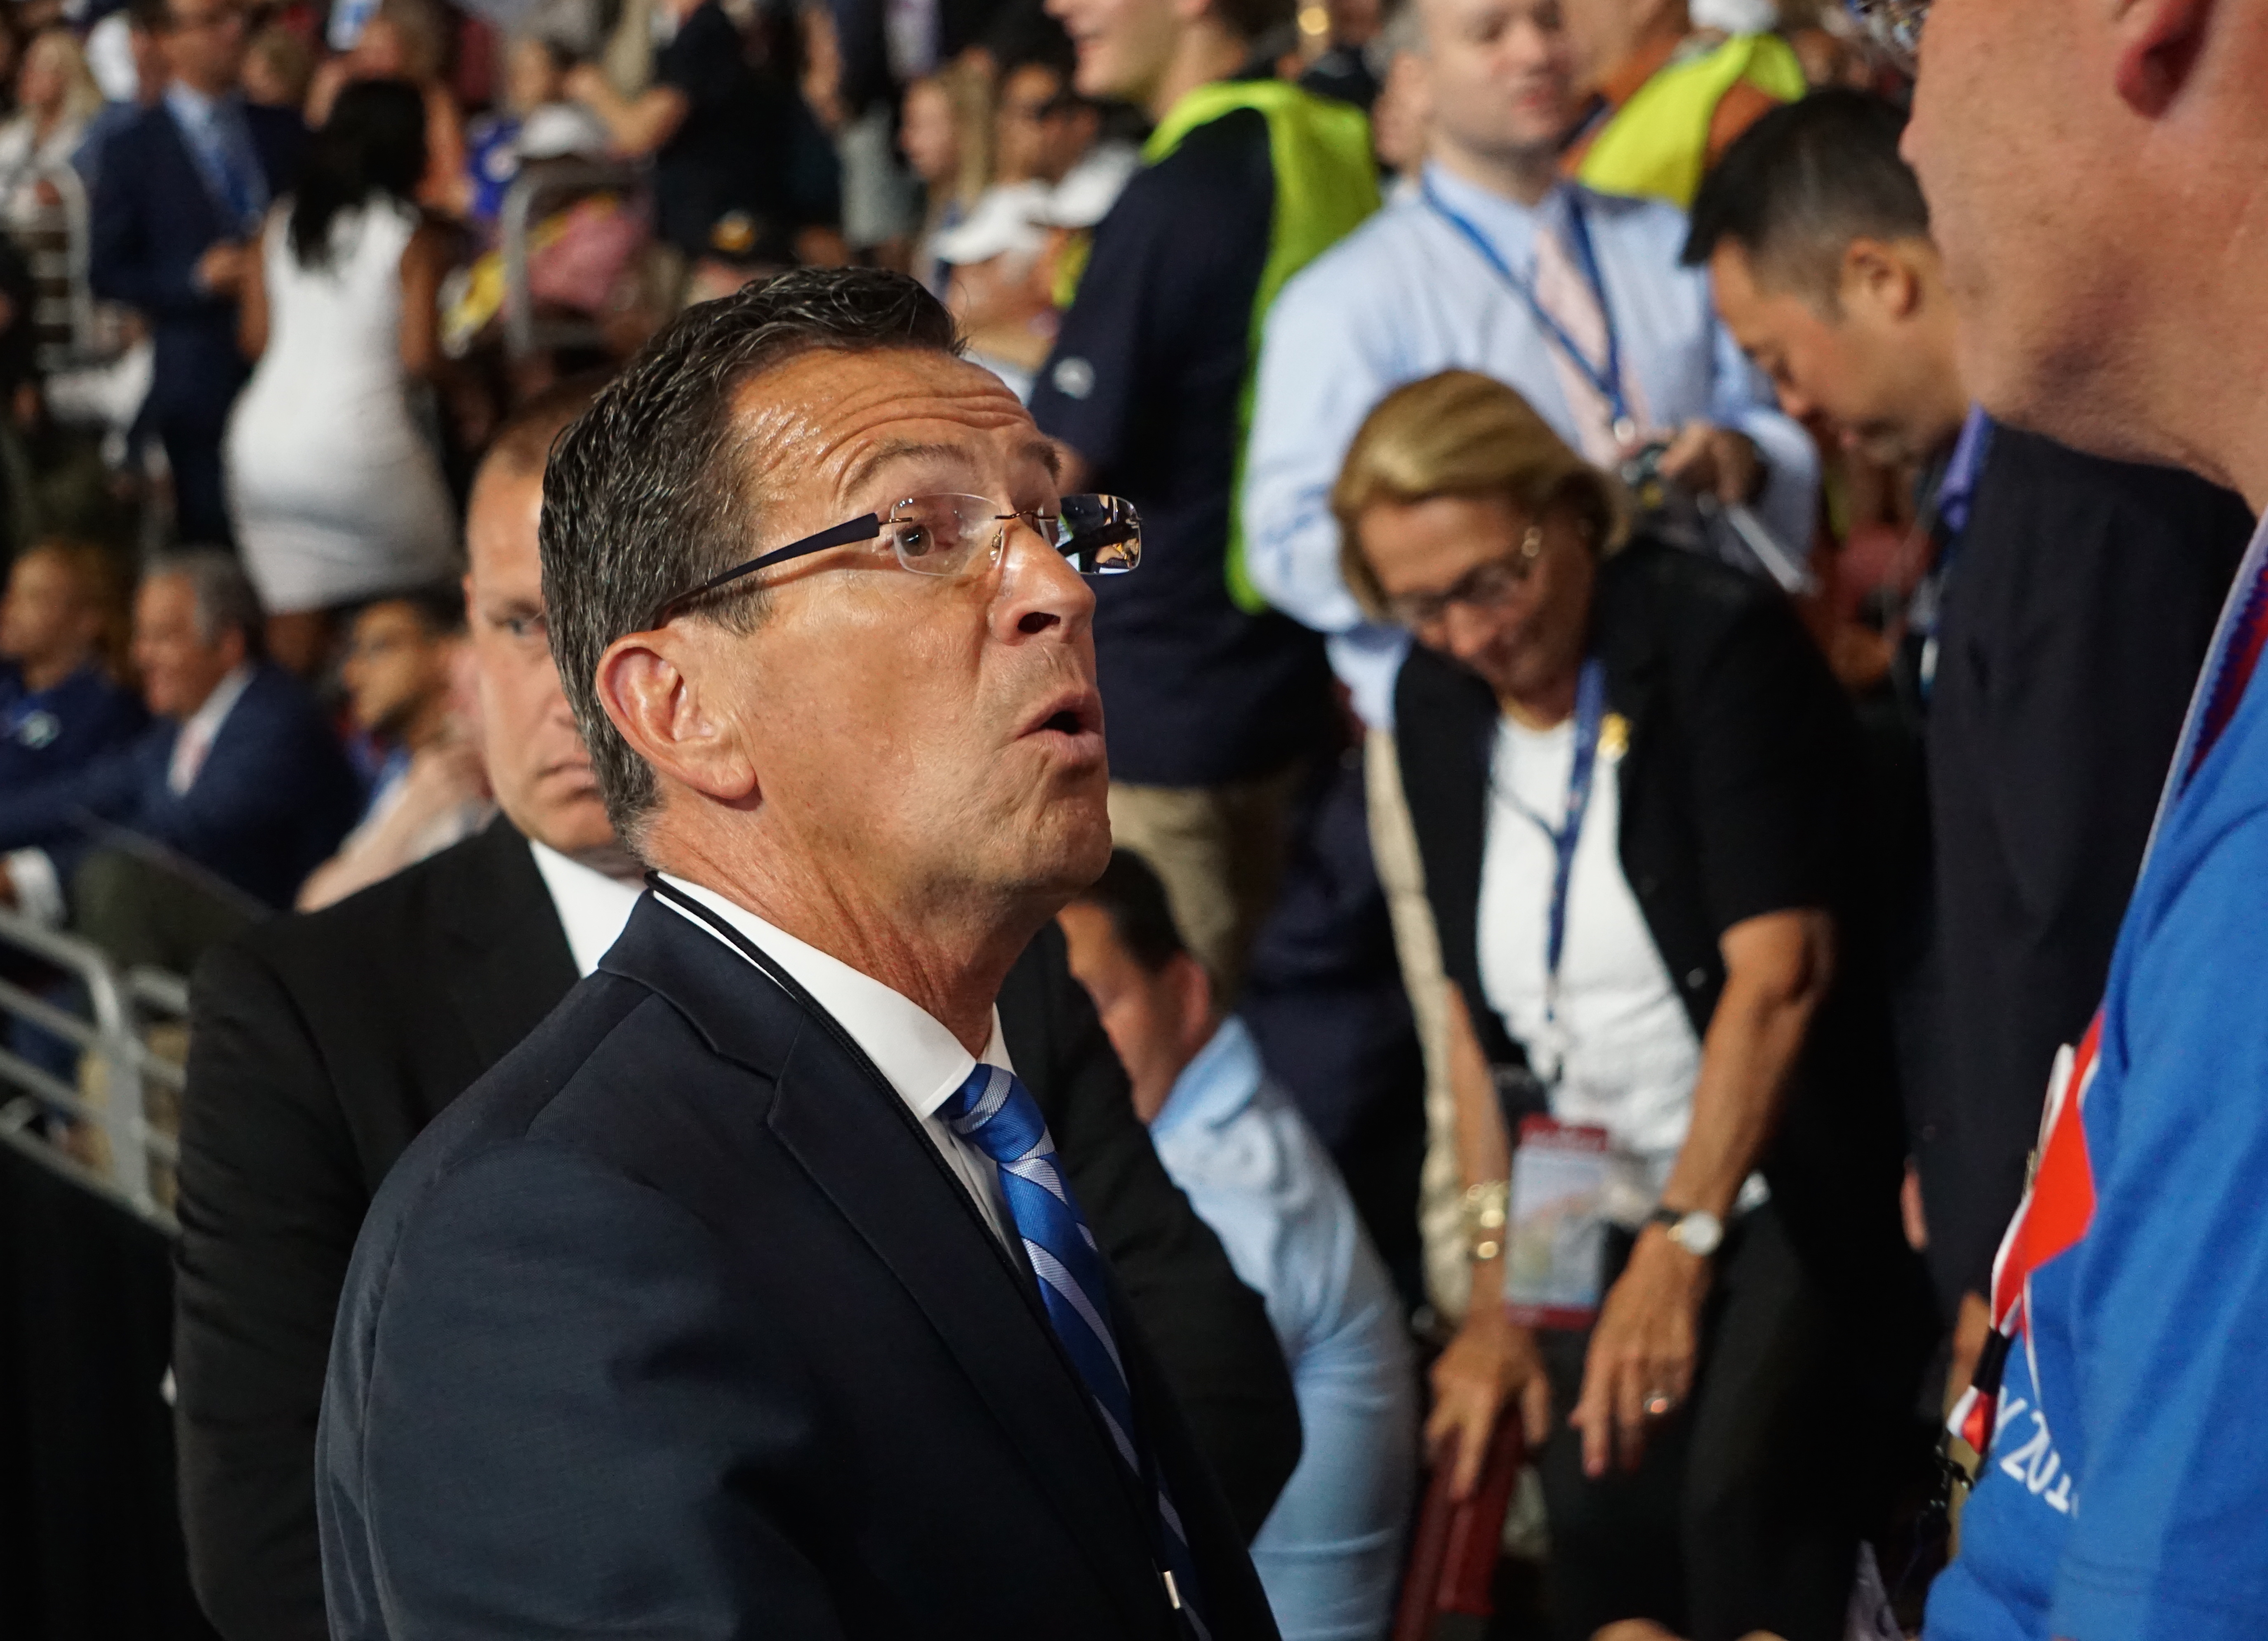 Malloy to attend inaugural as 'signal we are not going away'